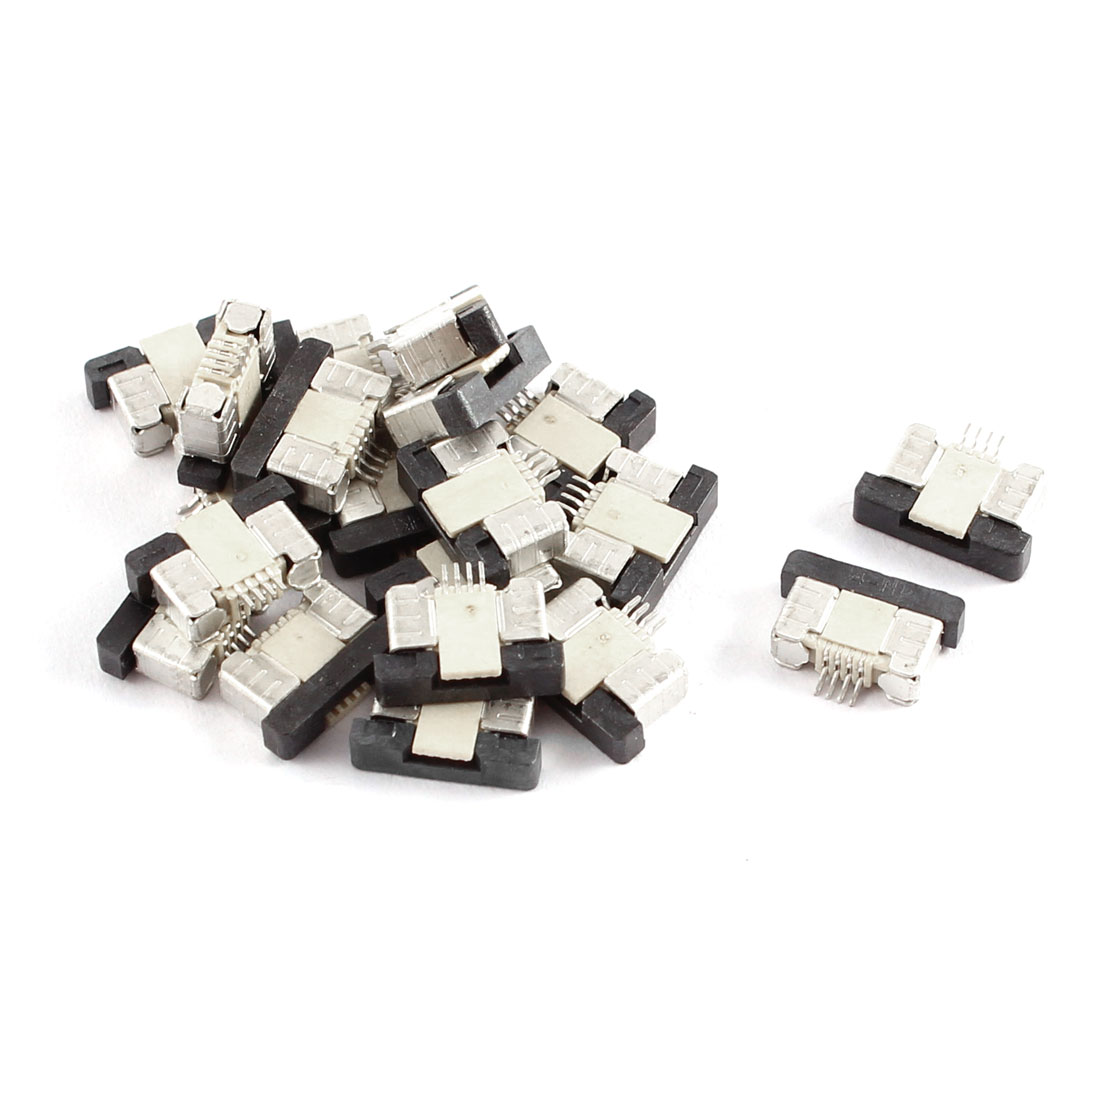 20Pcs Bottom Connect 4Pin 0.5mm Pitch FFC FPC Ribbon Sockets Connector